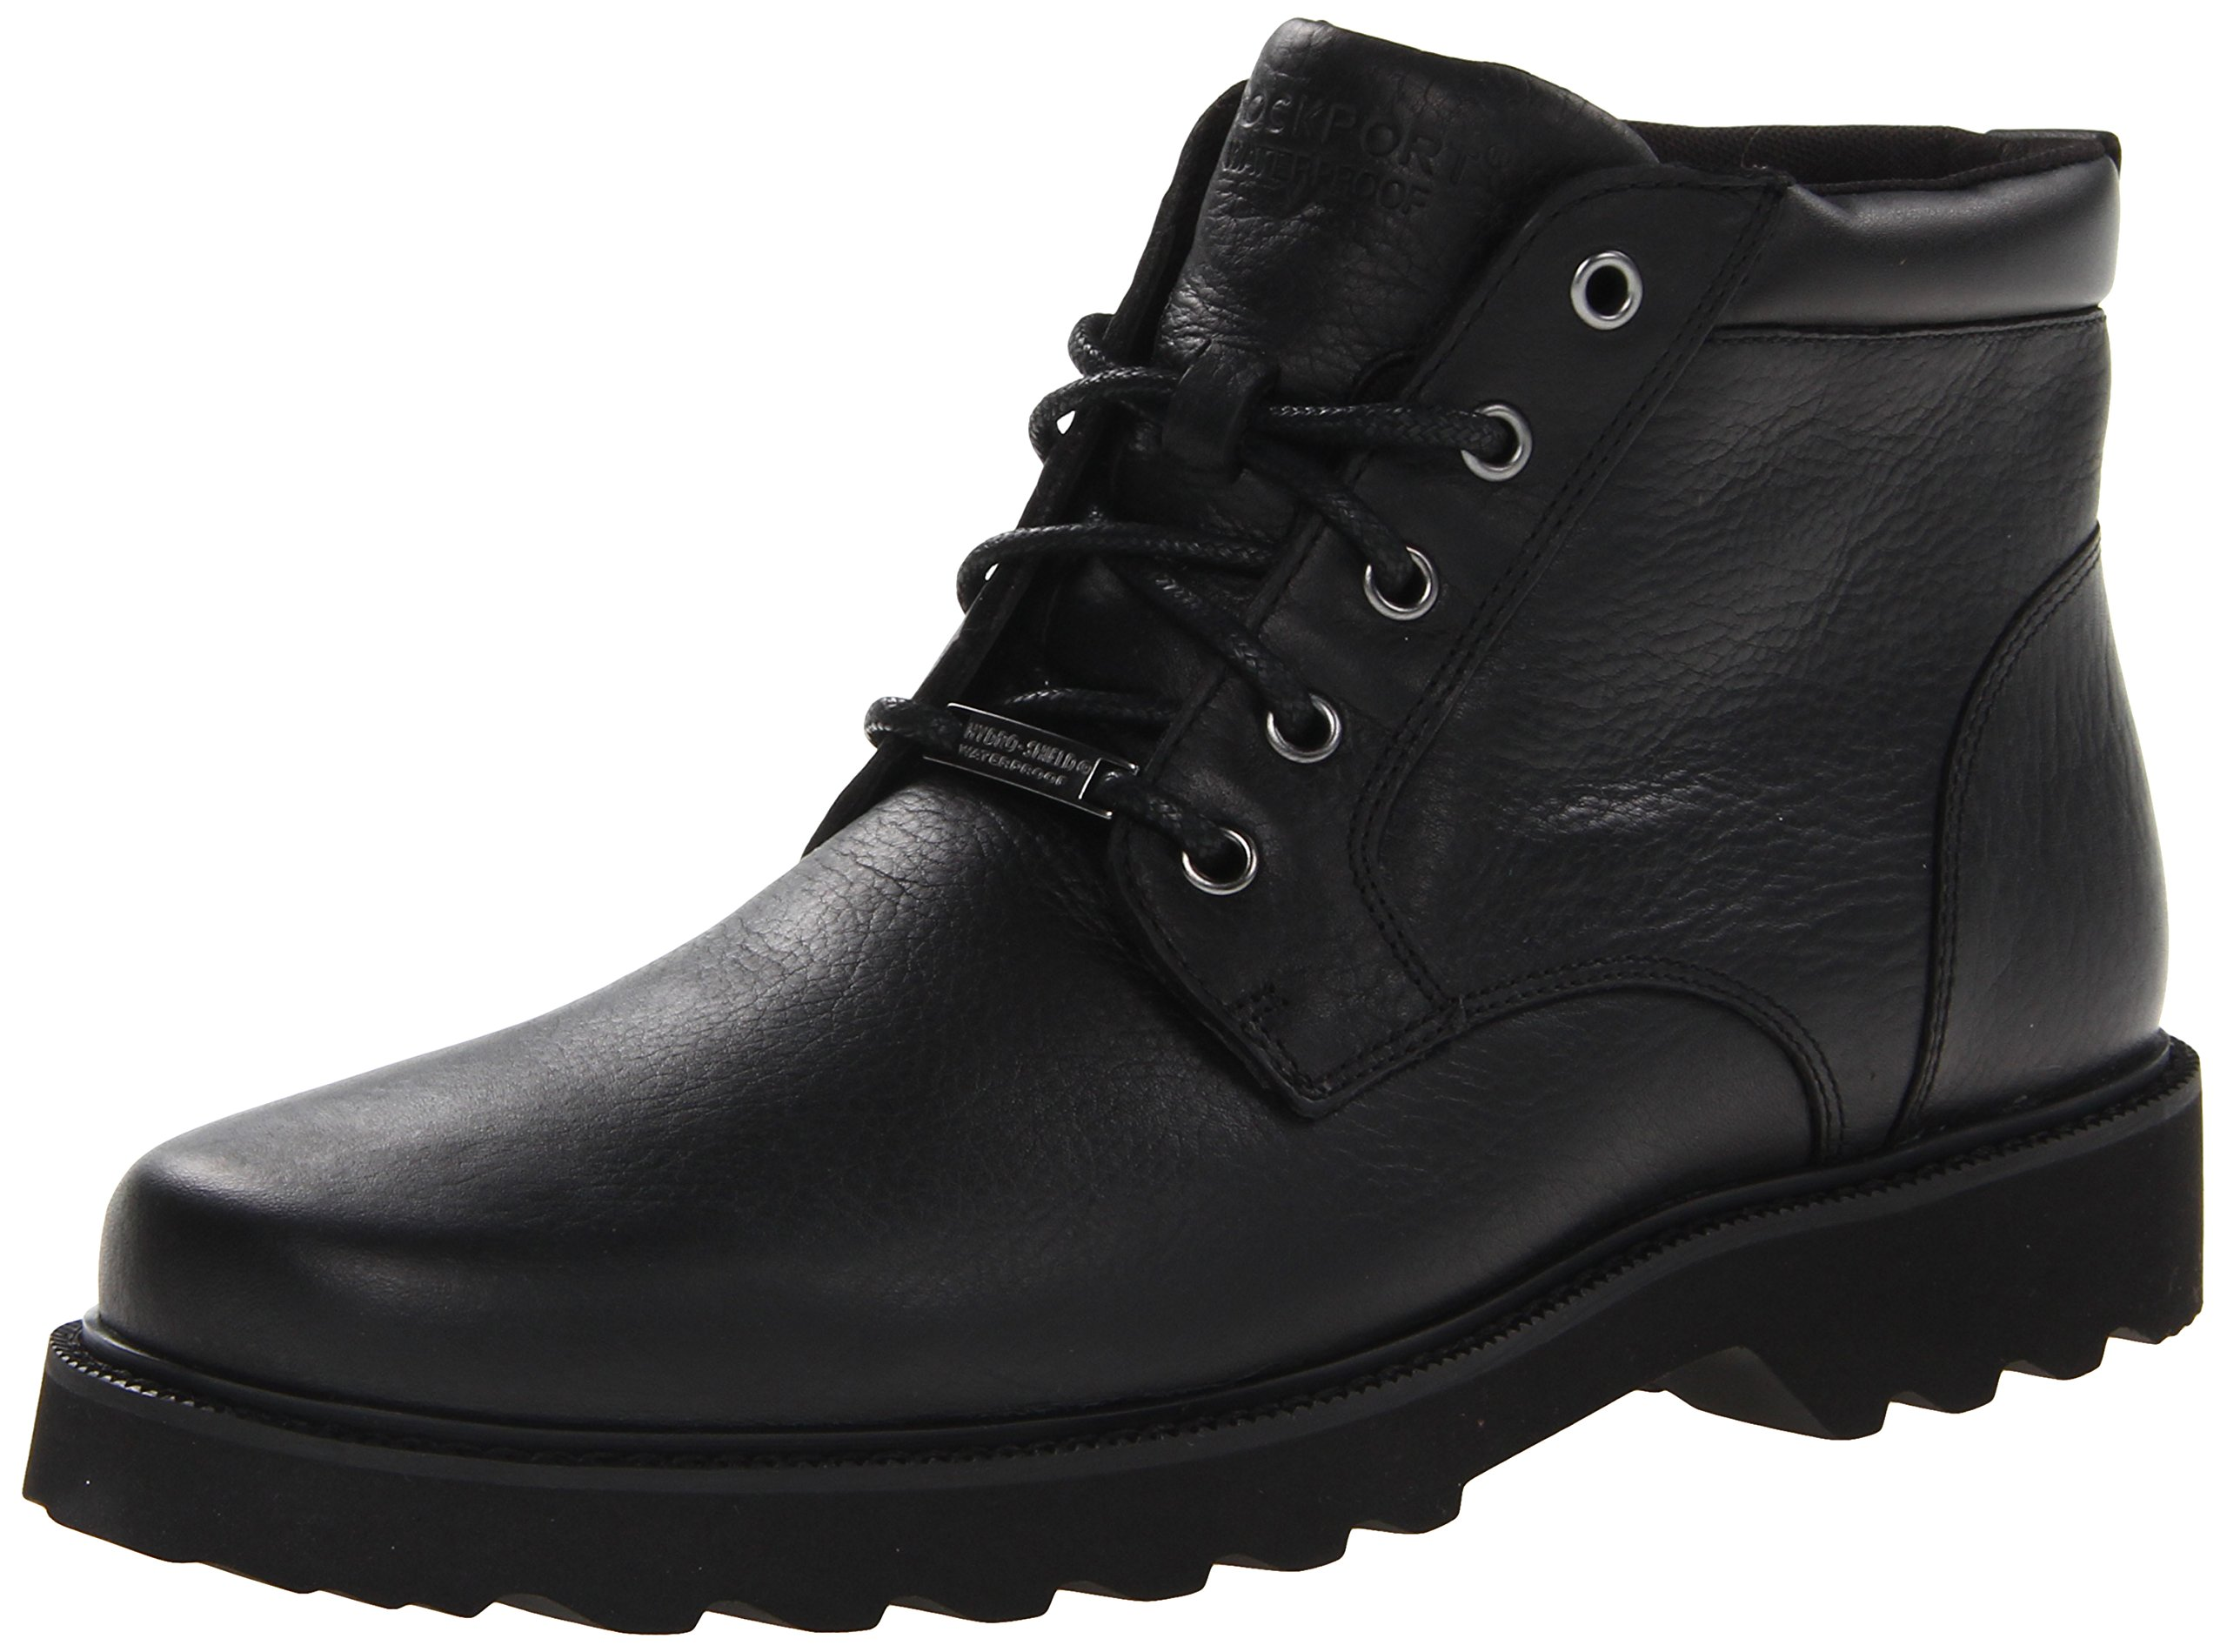 Rockport Men's Northfield WP Plain Toe Chukka Boot, Black Waterproof, 11 M US